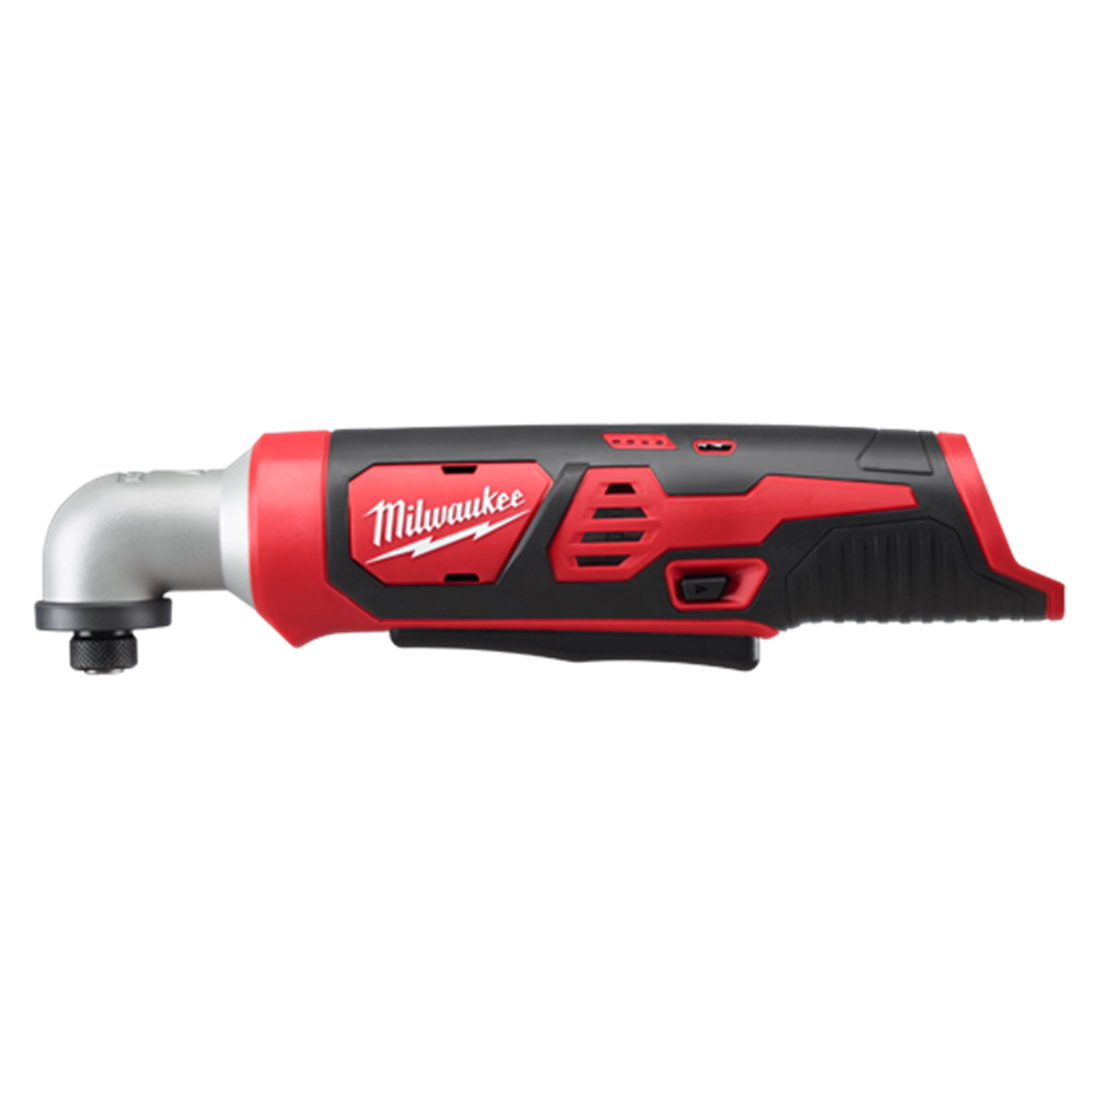 M12 Cordless Right Angle Impact Driver 1/4 inch Hex